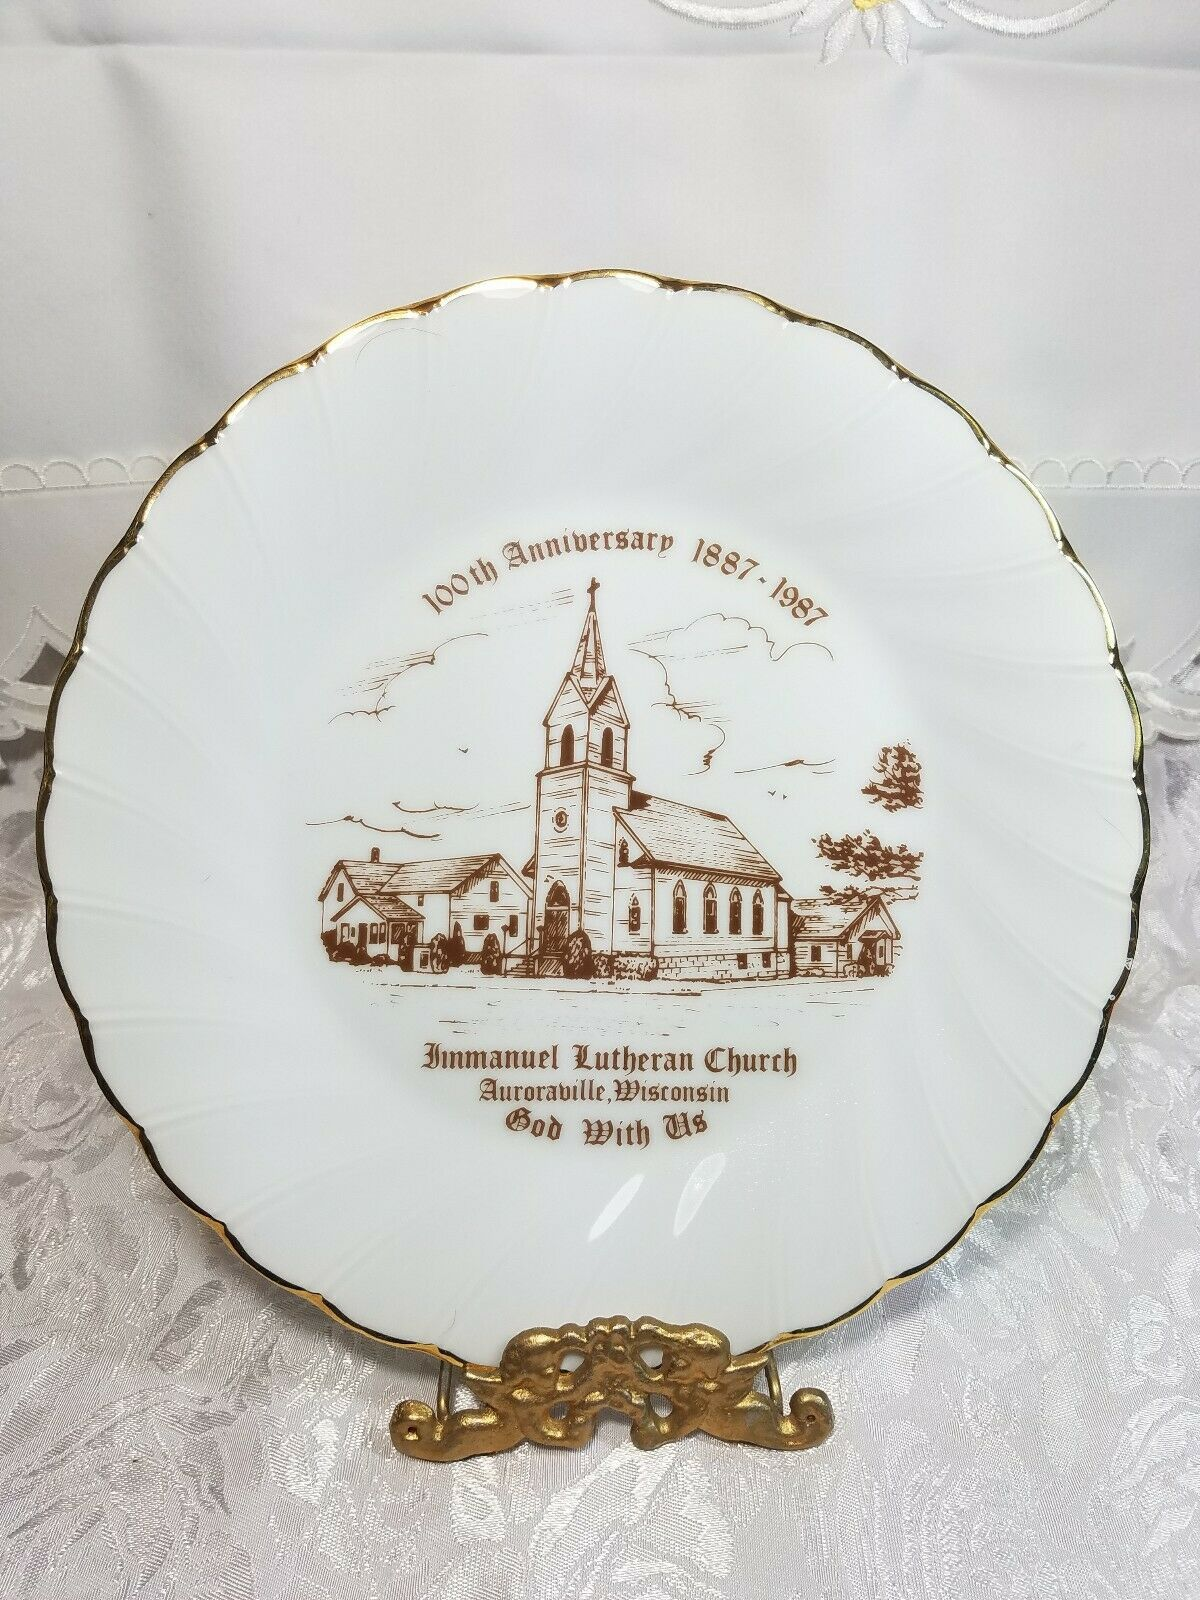 VINTAGE DECORATIVE PLATE ST IMMANUEL LUTHERAN CHURCH AURORAVILLE, WISCONSIN 1987